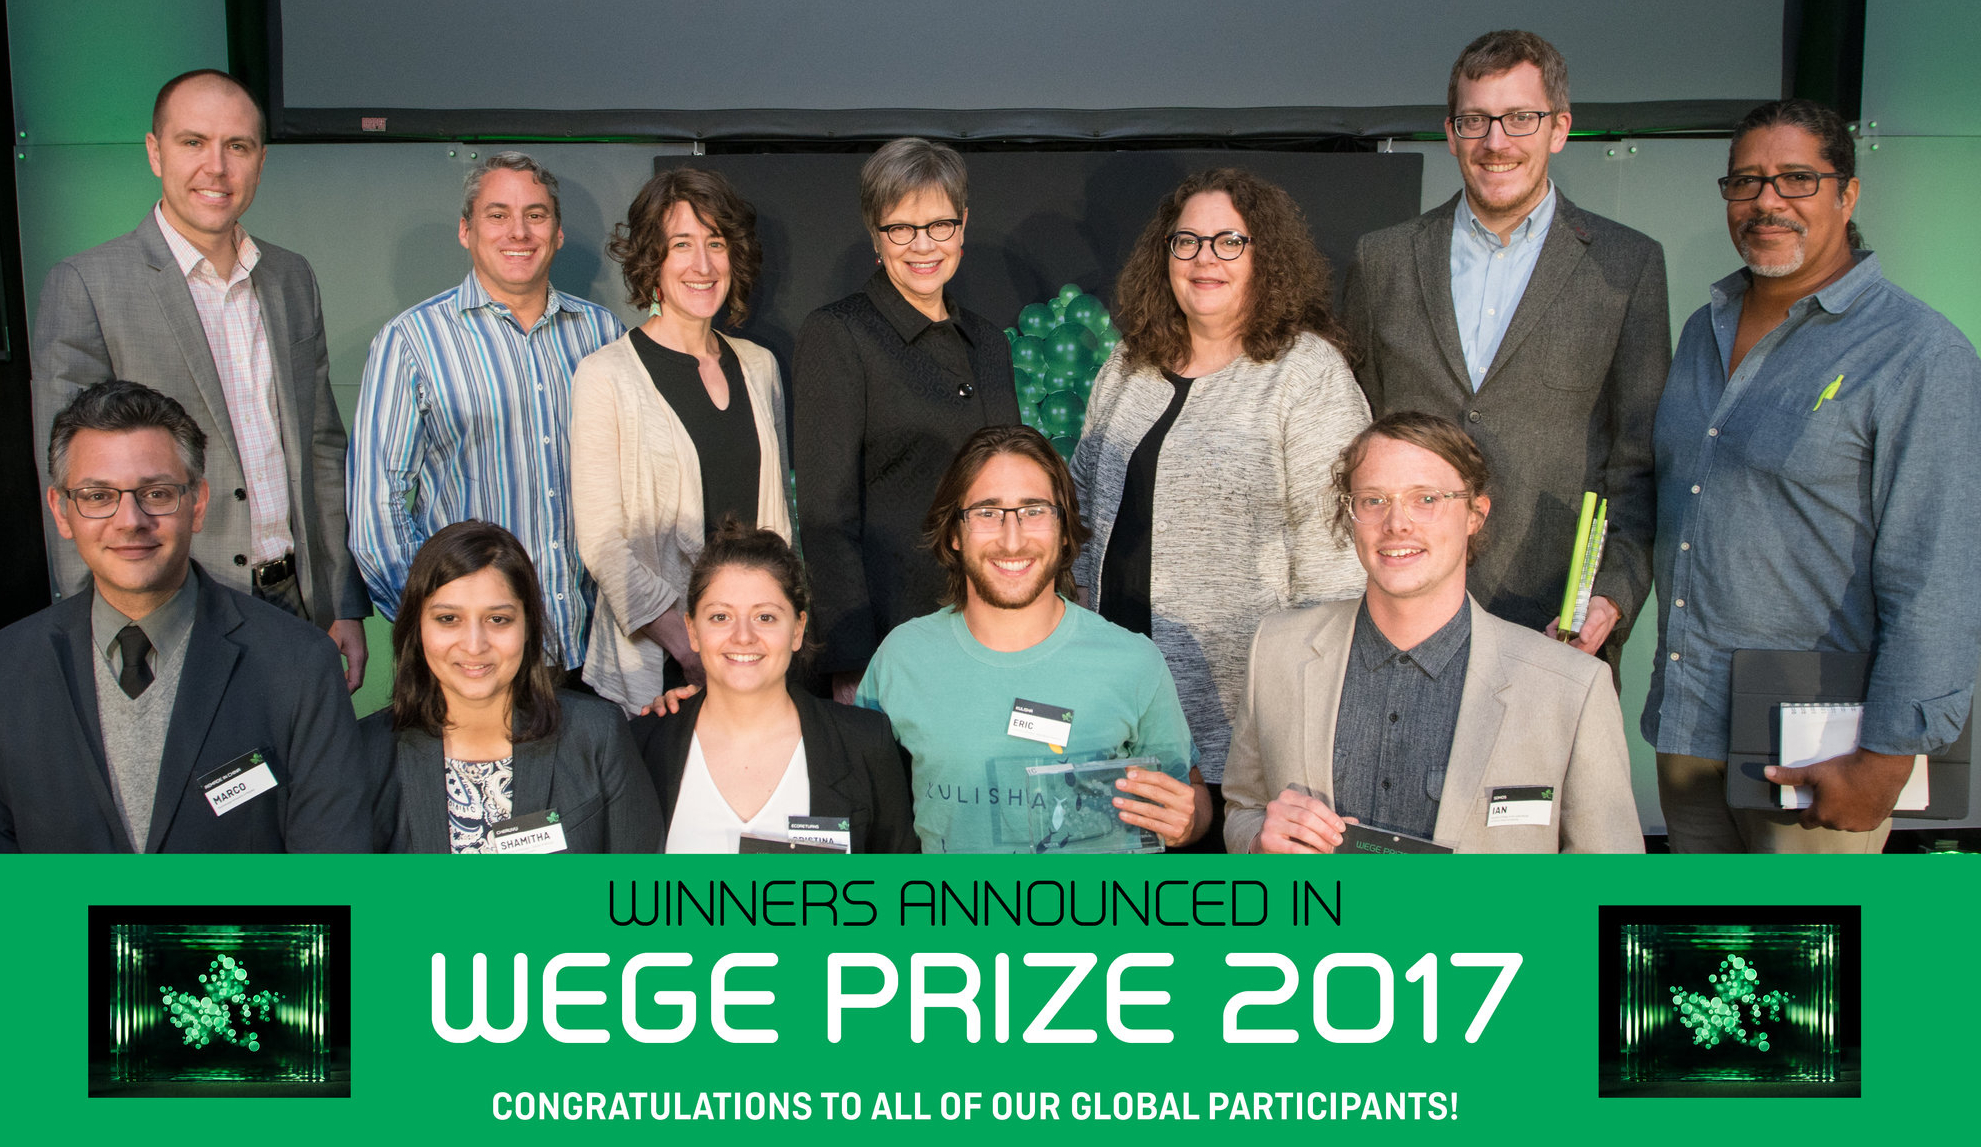 Wege Prize Winners Announced 2017